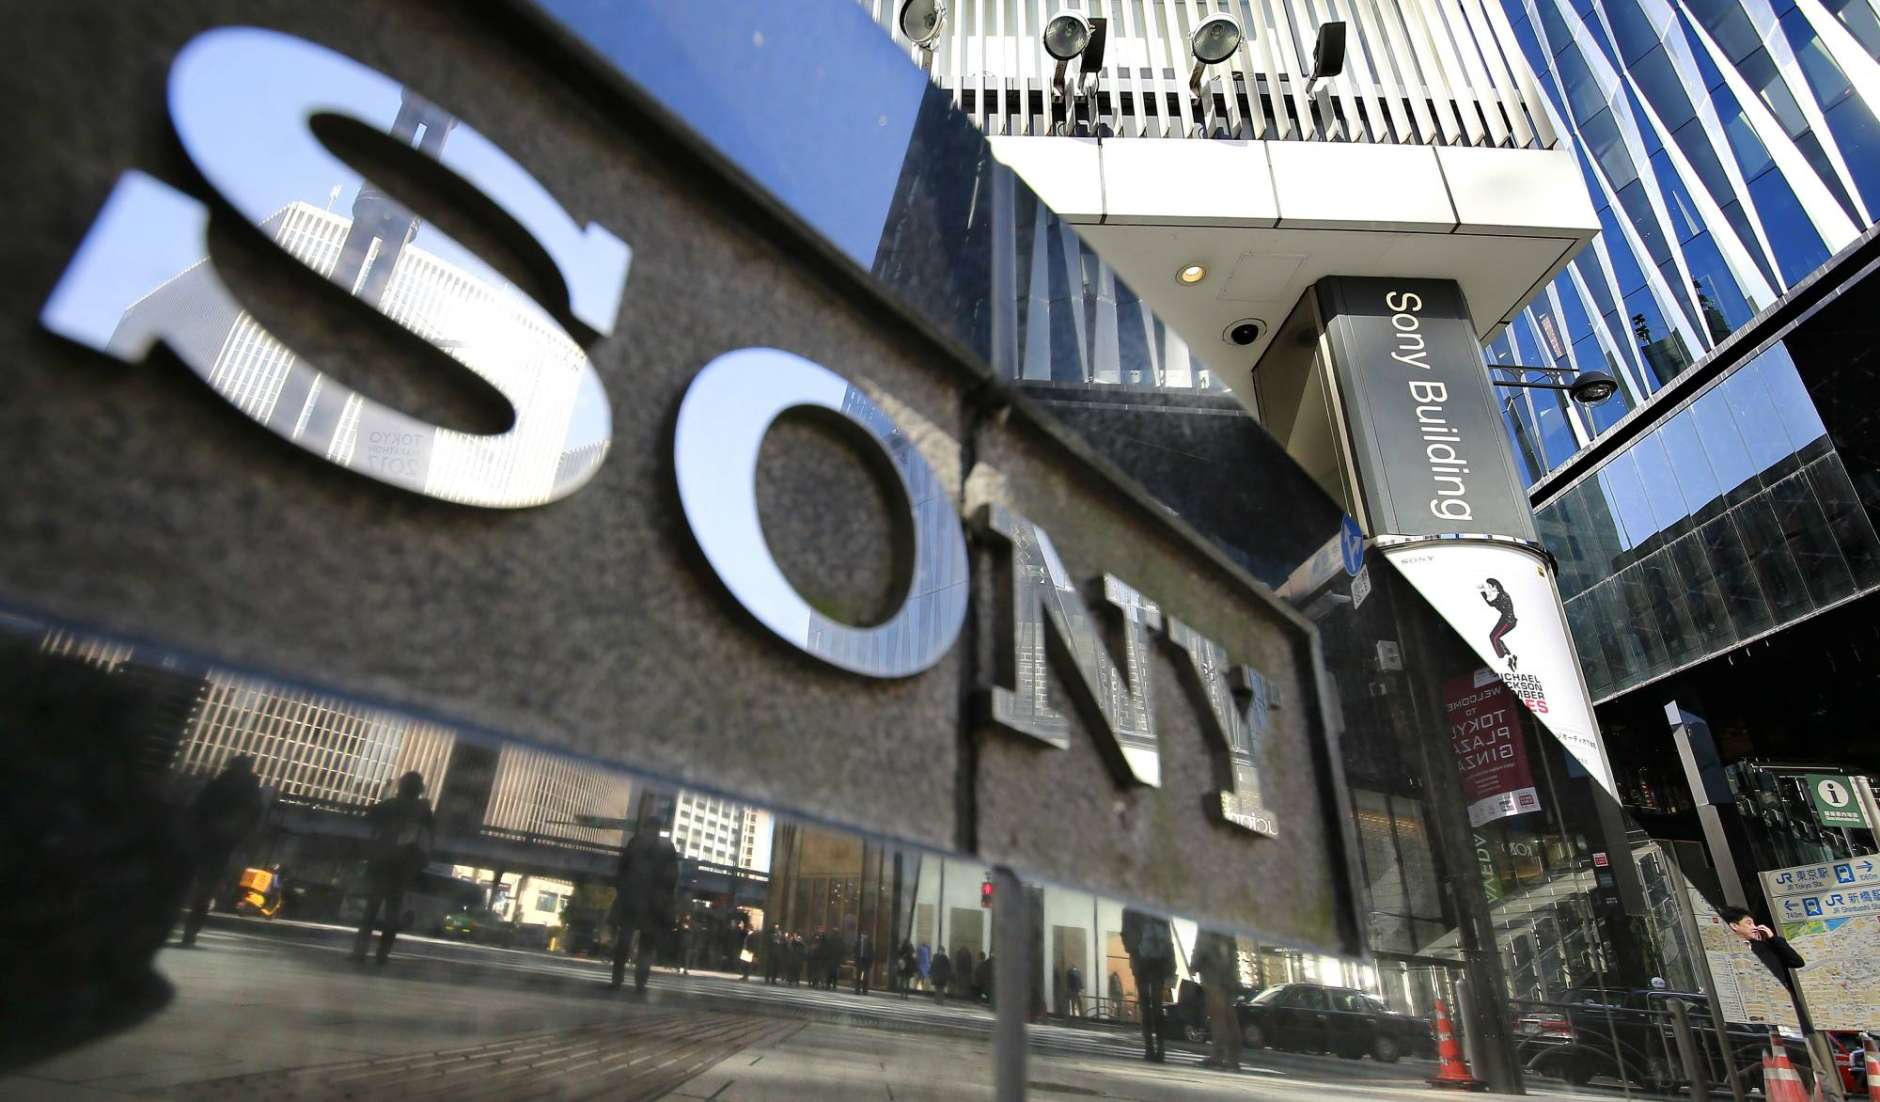 People are reflected on a wall of the Sony showroom building at Ginza shopping district in Tokyo, Thursday, Feb. 2, 2017.  Japanese electronics and entertainment company Sony Corp. said its profit dropped 84 percent in October-December as losses in its movie division offset healthy results in its video game business. (AP Photo/Shizuo Kambayashi)